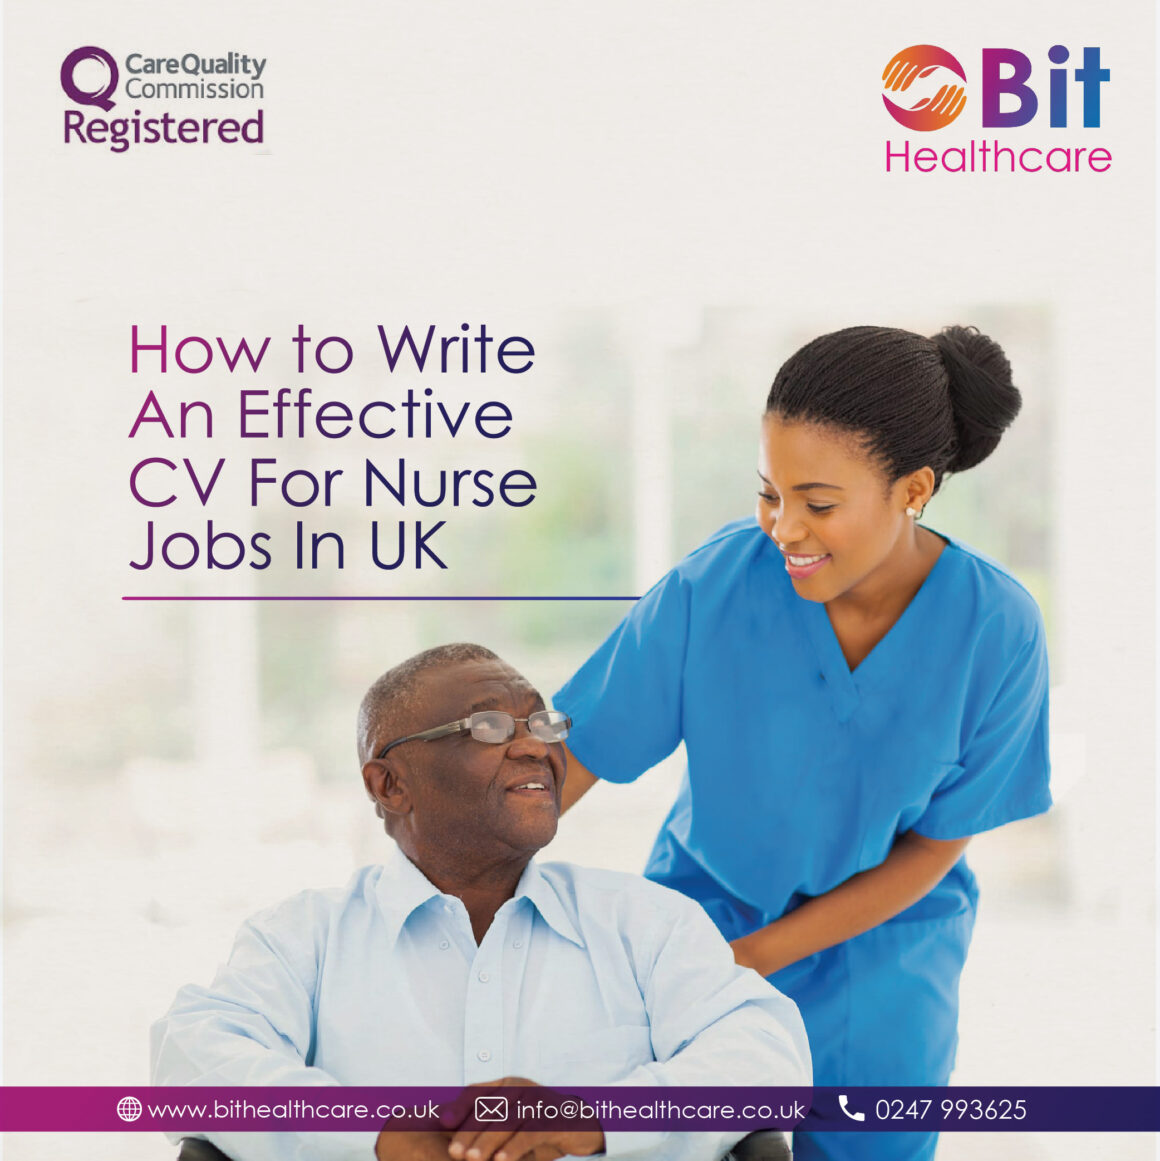 How To Write An Effective CV For Nurse Jobs In The UK